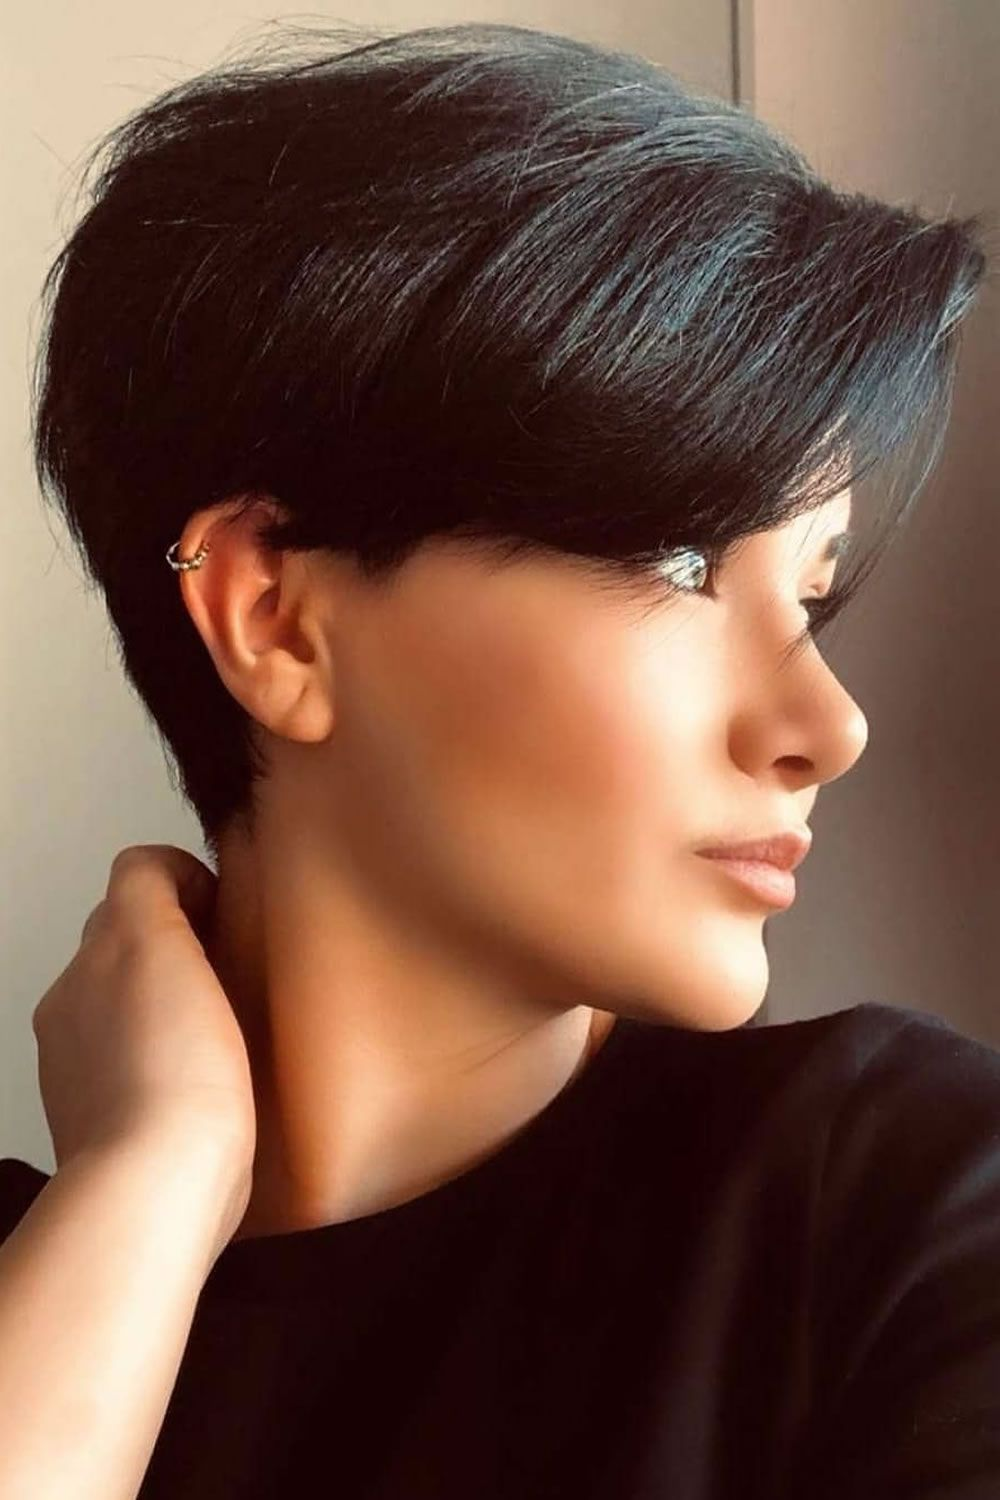 35+ Images of short hairstyles ideas